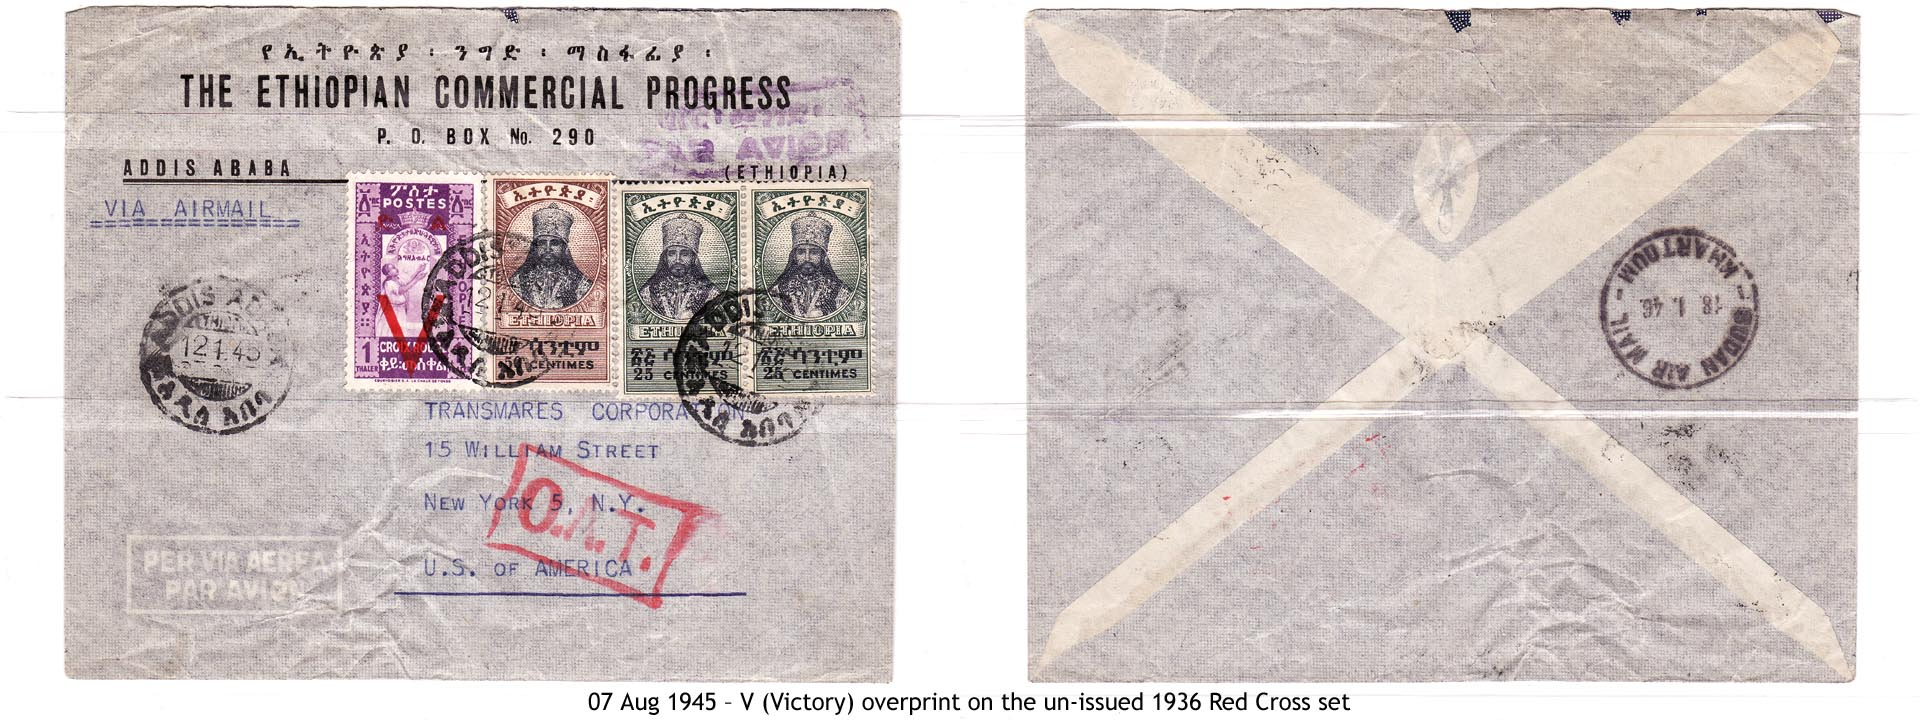 19450807 – V (Victory) overprint on the un-issued 1936 Red Cross set